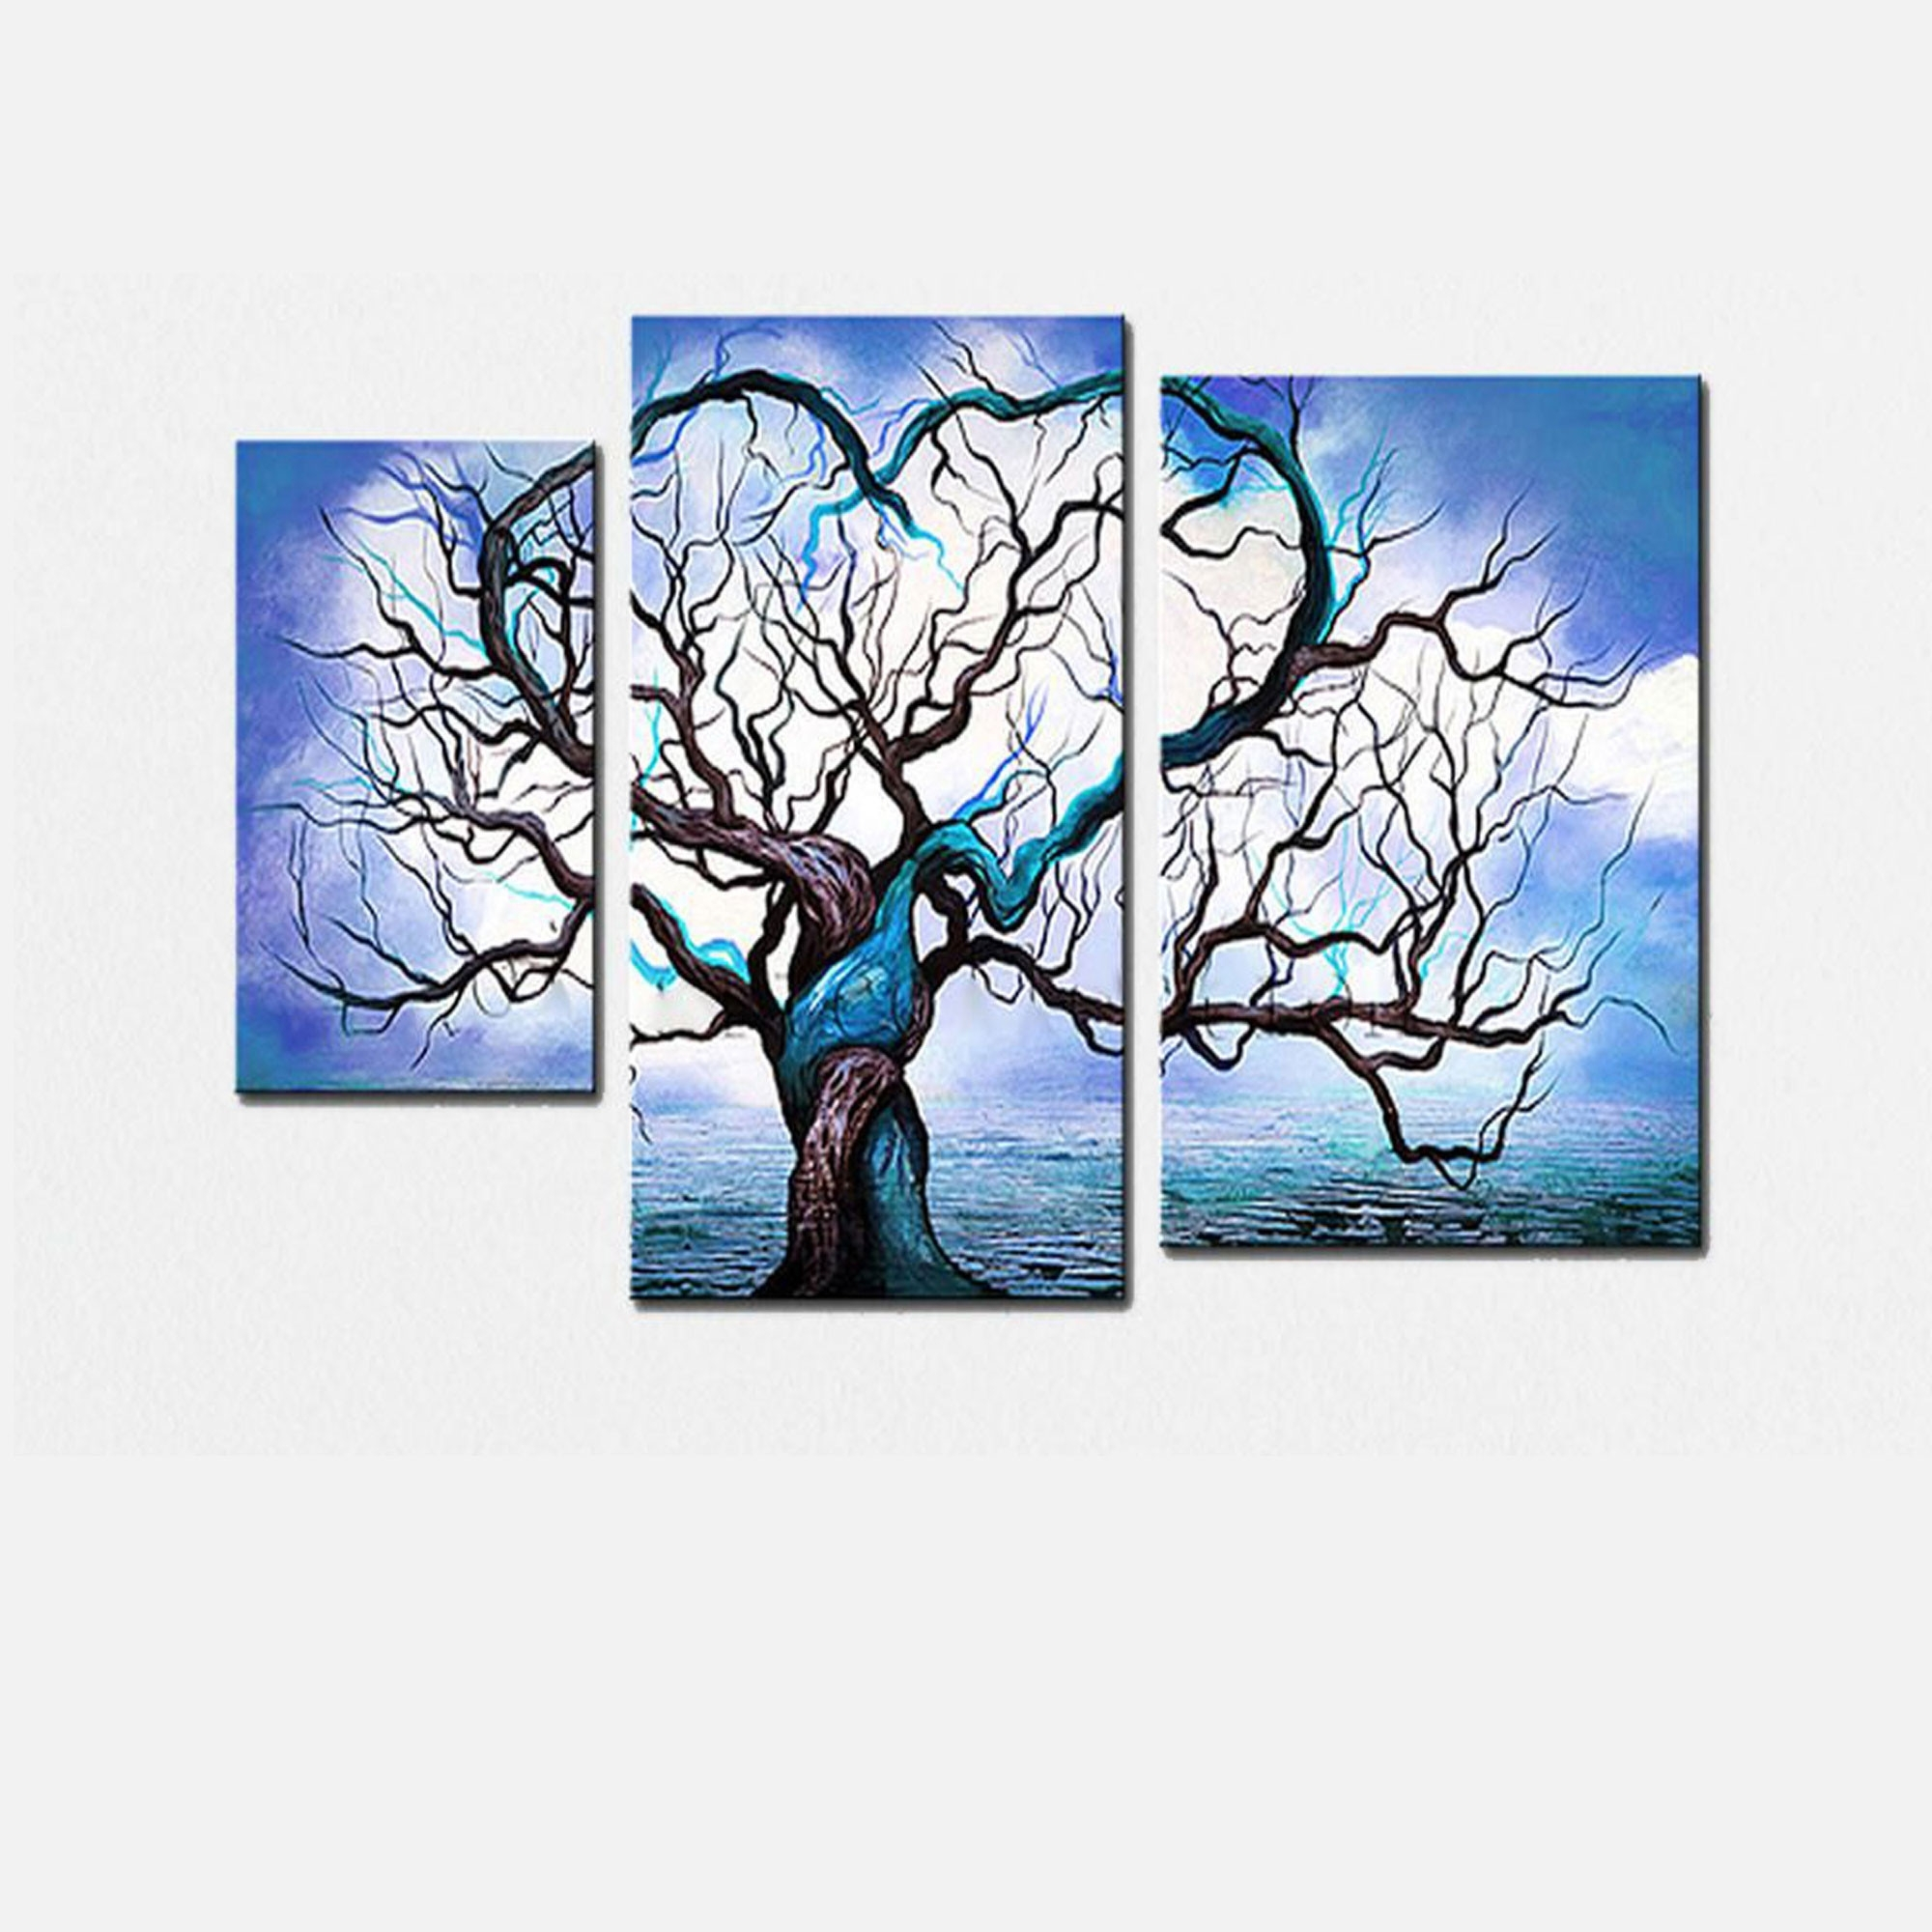 Blue Tree Love Landscape Canvas Wall Art Oil Painting | Creativity With Regard To Most Recently Released Masters Canvas Wall Art (View 4 of 15)